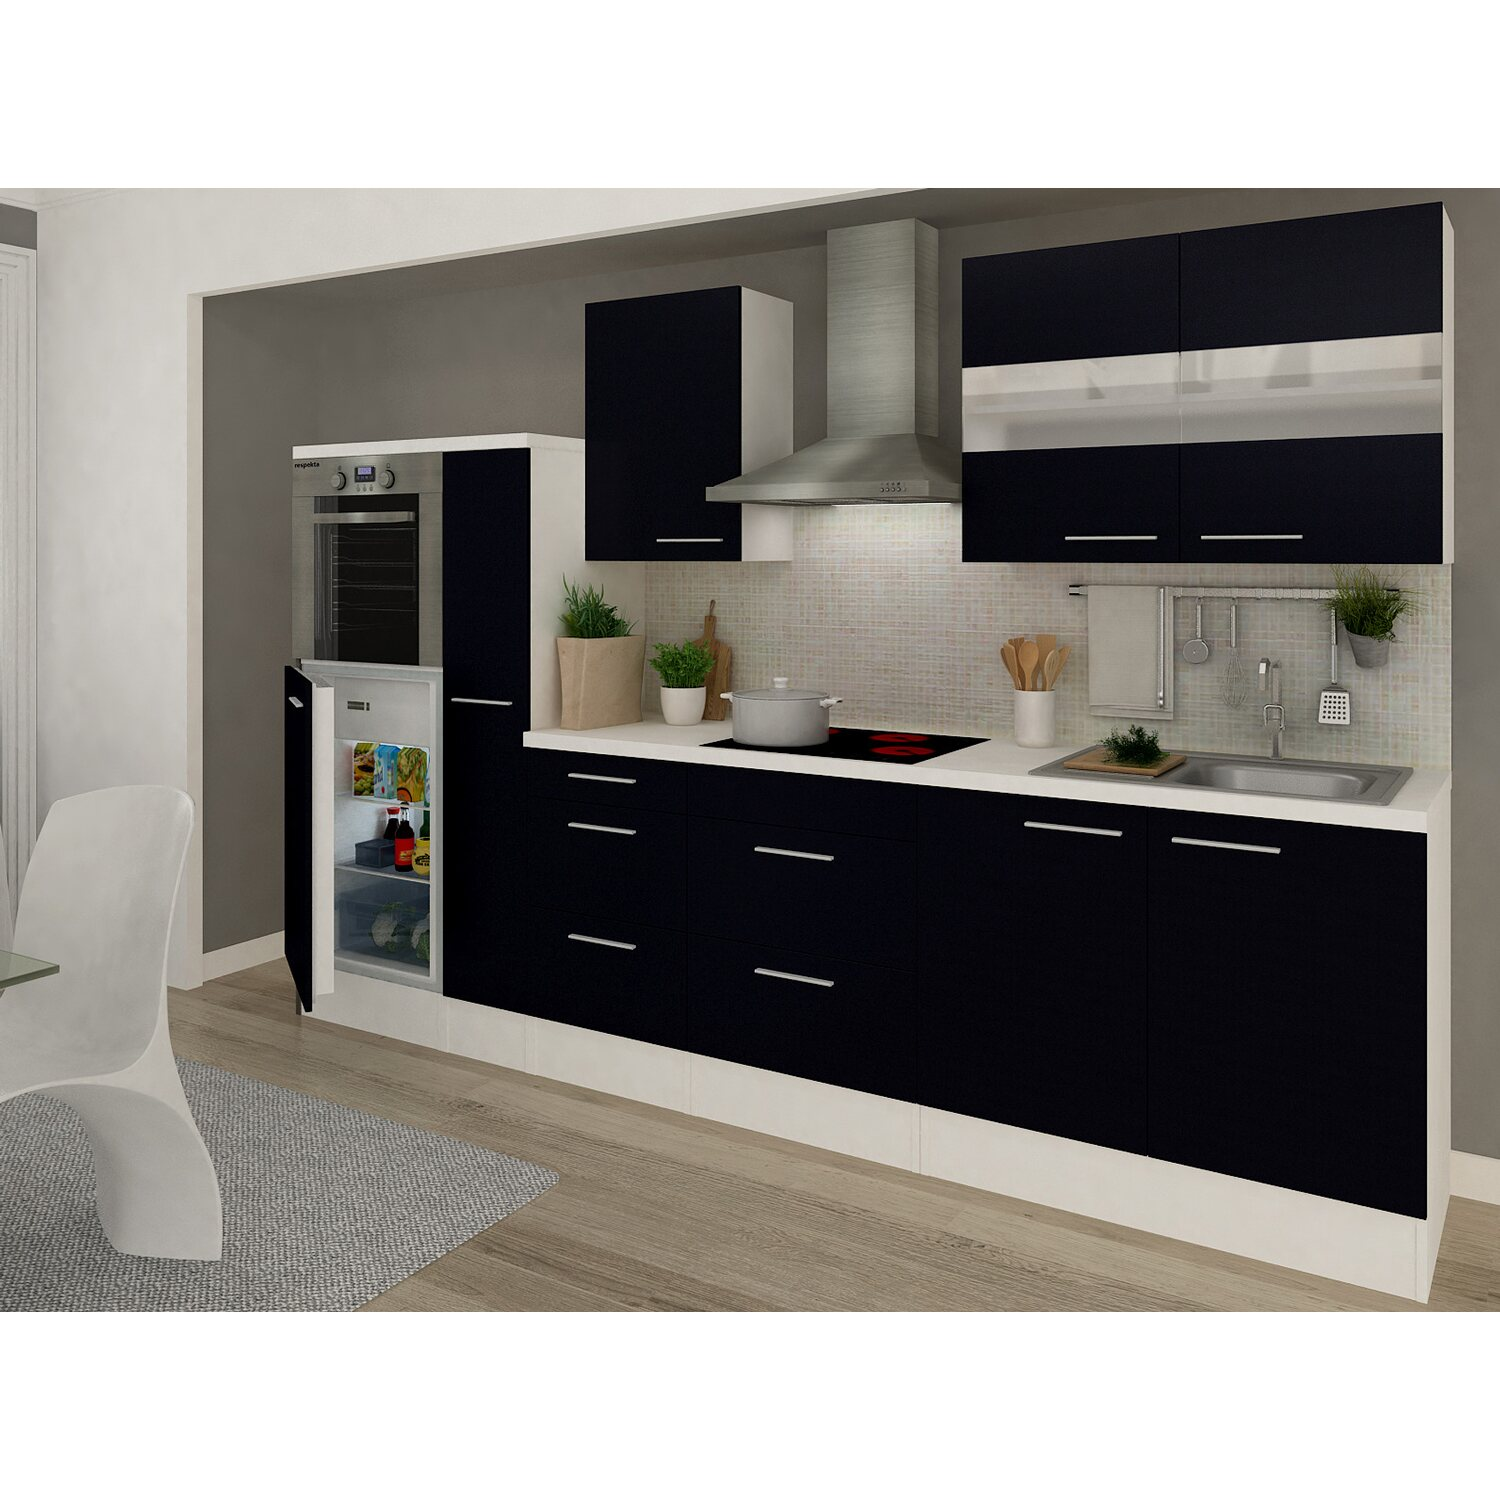 respekta premium k chenzeile rp300hws 300 cm schwarz wei kaufen bei obi. Black Bedroom Furniture Sets. Home Design Ideas